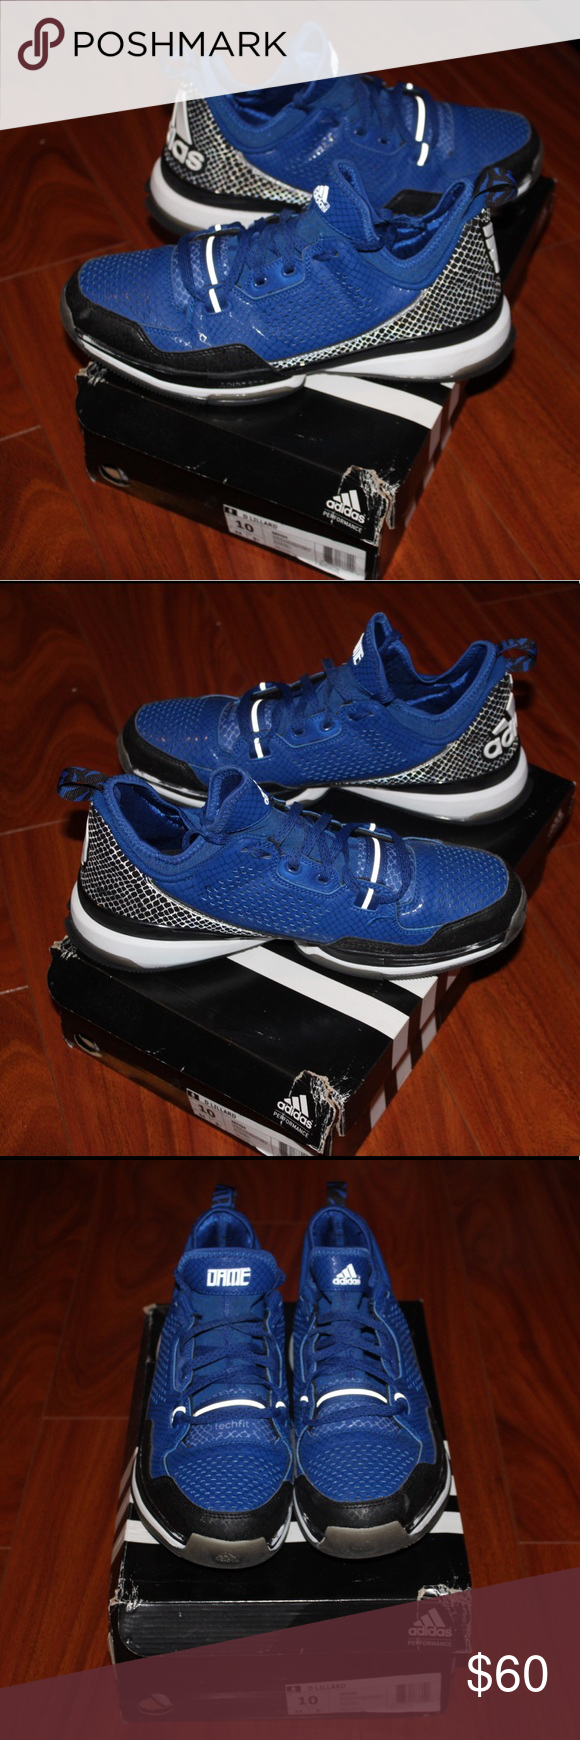 Damian Lillard 1 Blue adidas, Clothes design, Boat shoes